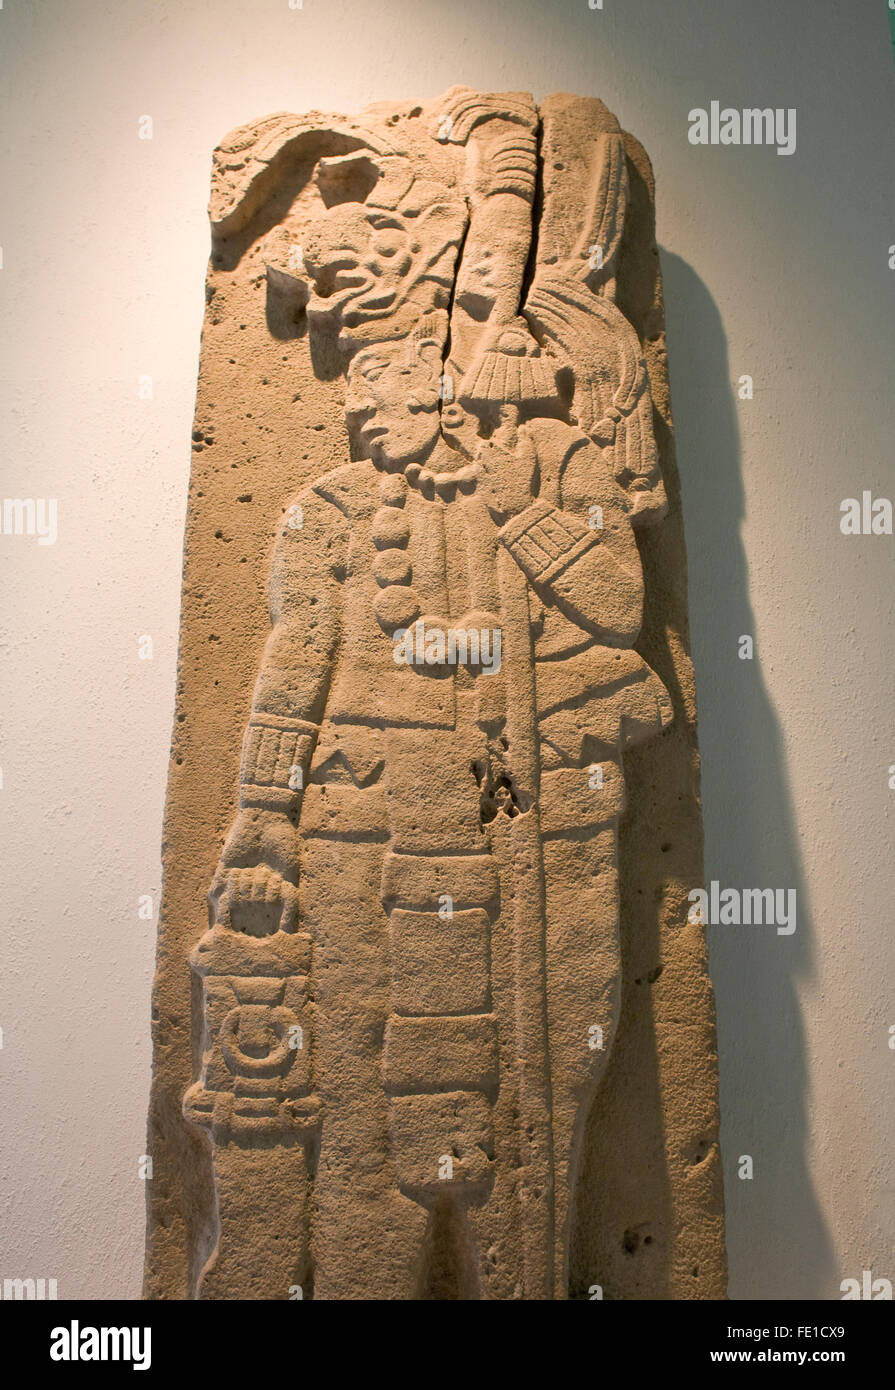 Pre hispanic stone carving of the mixtec or zapotec